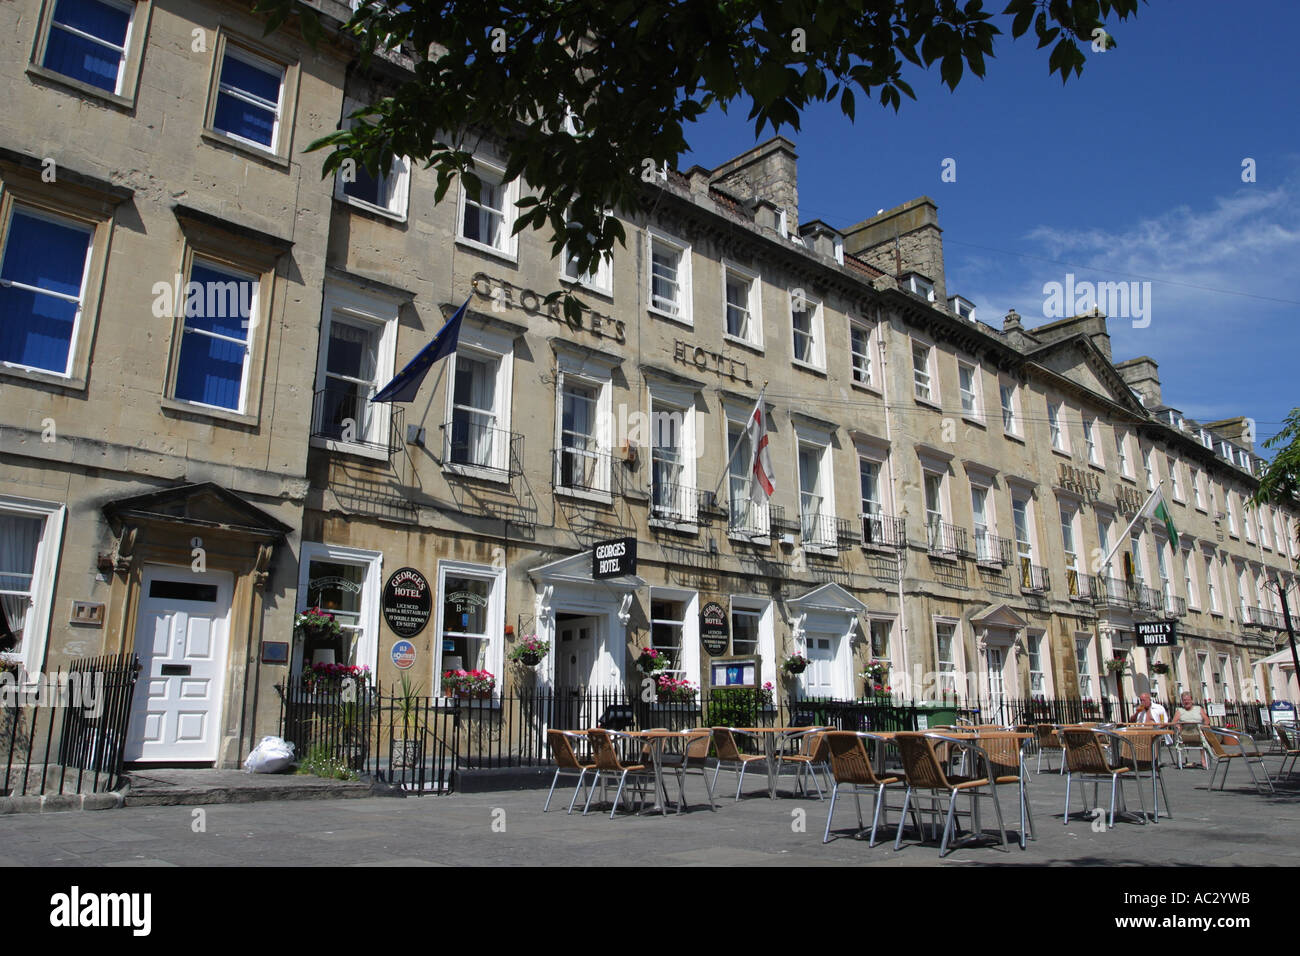 Bath England the Georges Hotel with open air cafe tables and